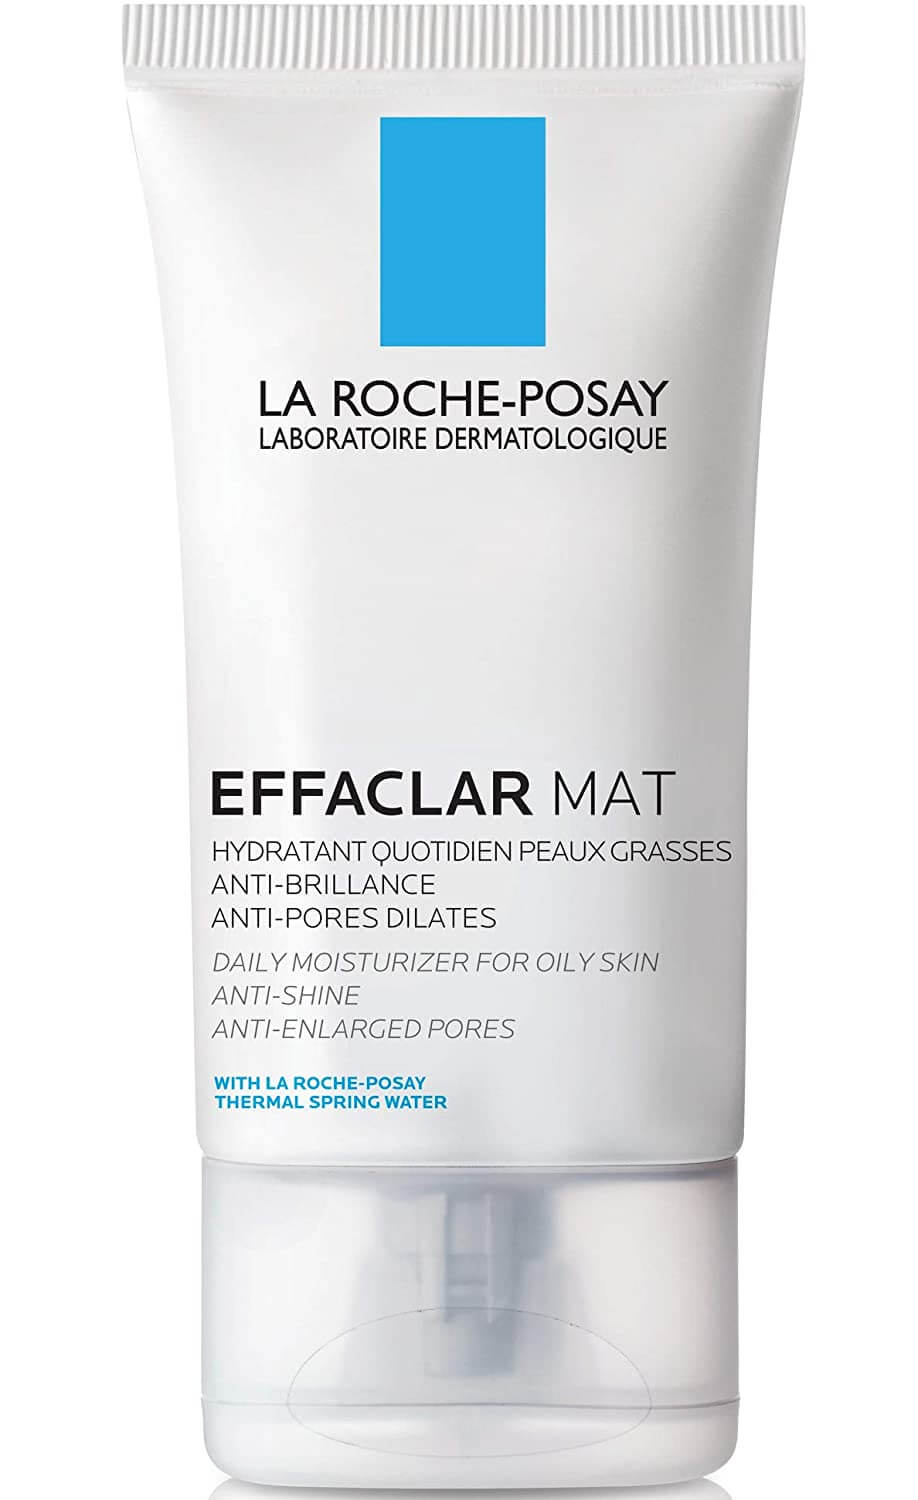 La Roche-Posay Effaclar Mat Daily Moisturizer For Oily Skin